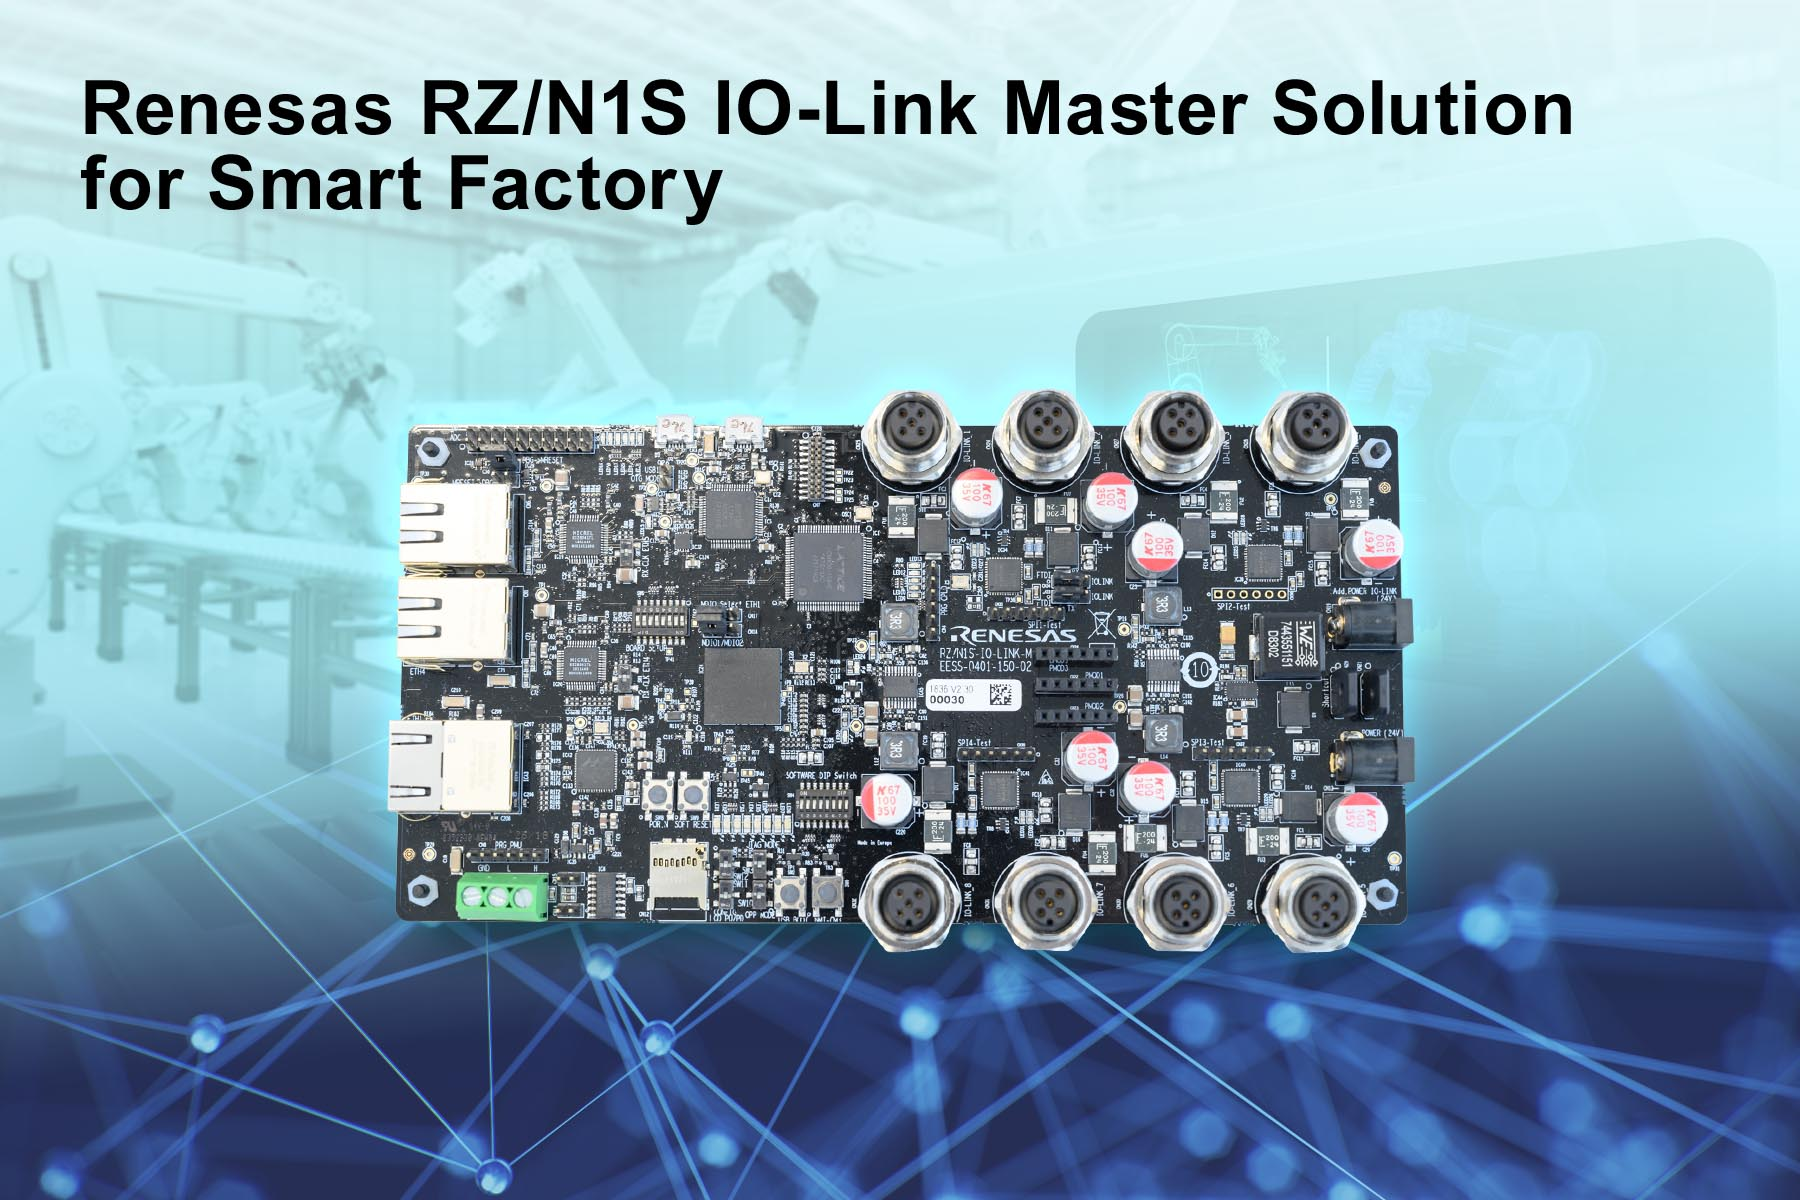 Renesas Electronics Accelerates Sensor Network Gateway Design With Electronic Circuit Software Solution Corporation Tse6723 A Premier Supplier Of Advanced Semiconductor Solutions Today Introduced New Io Link Master Development Kit To